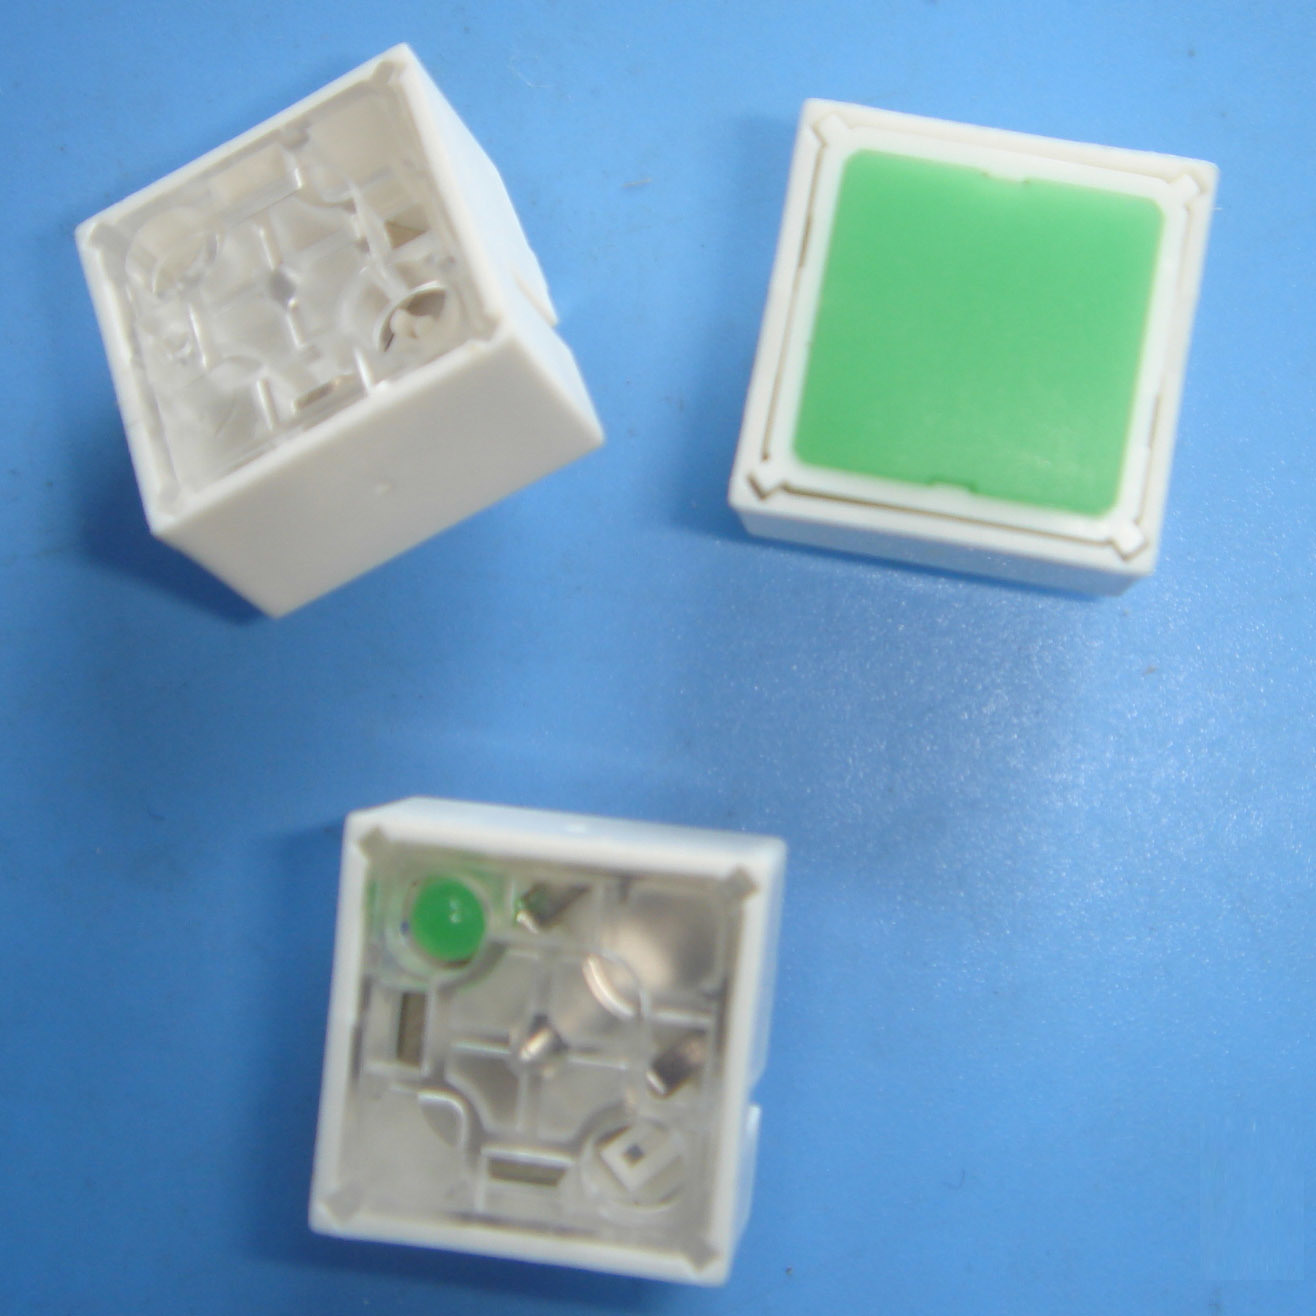 Key Switch for Hospital Bed (LT1-15/19 series)